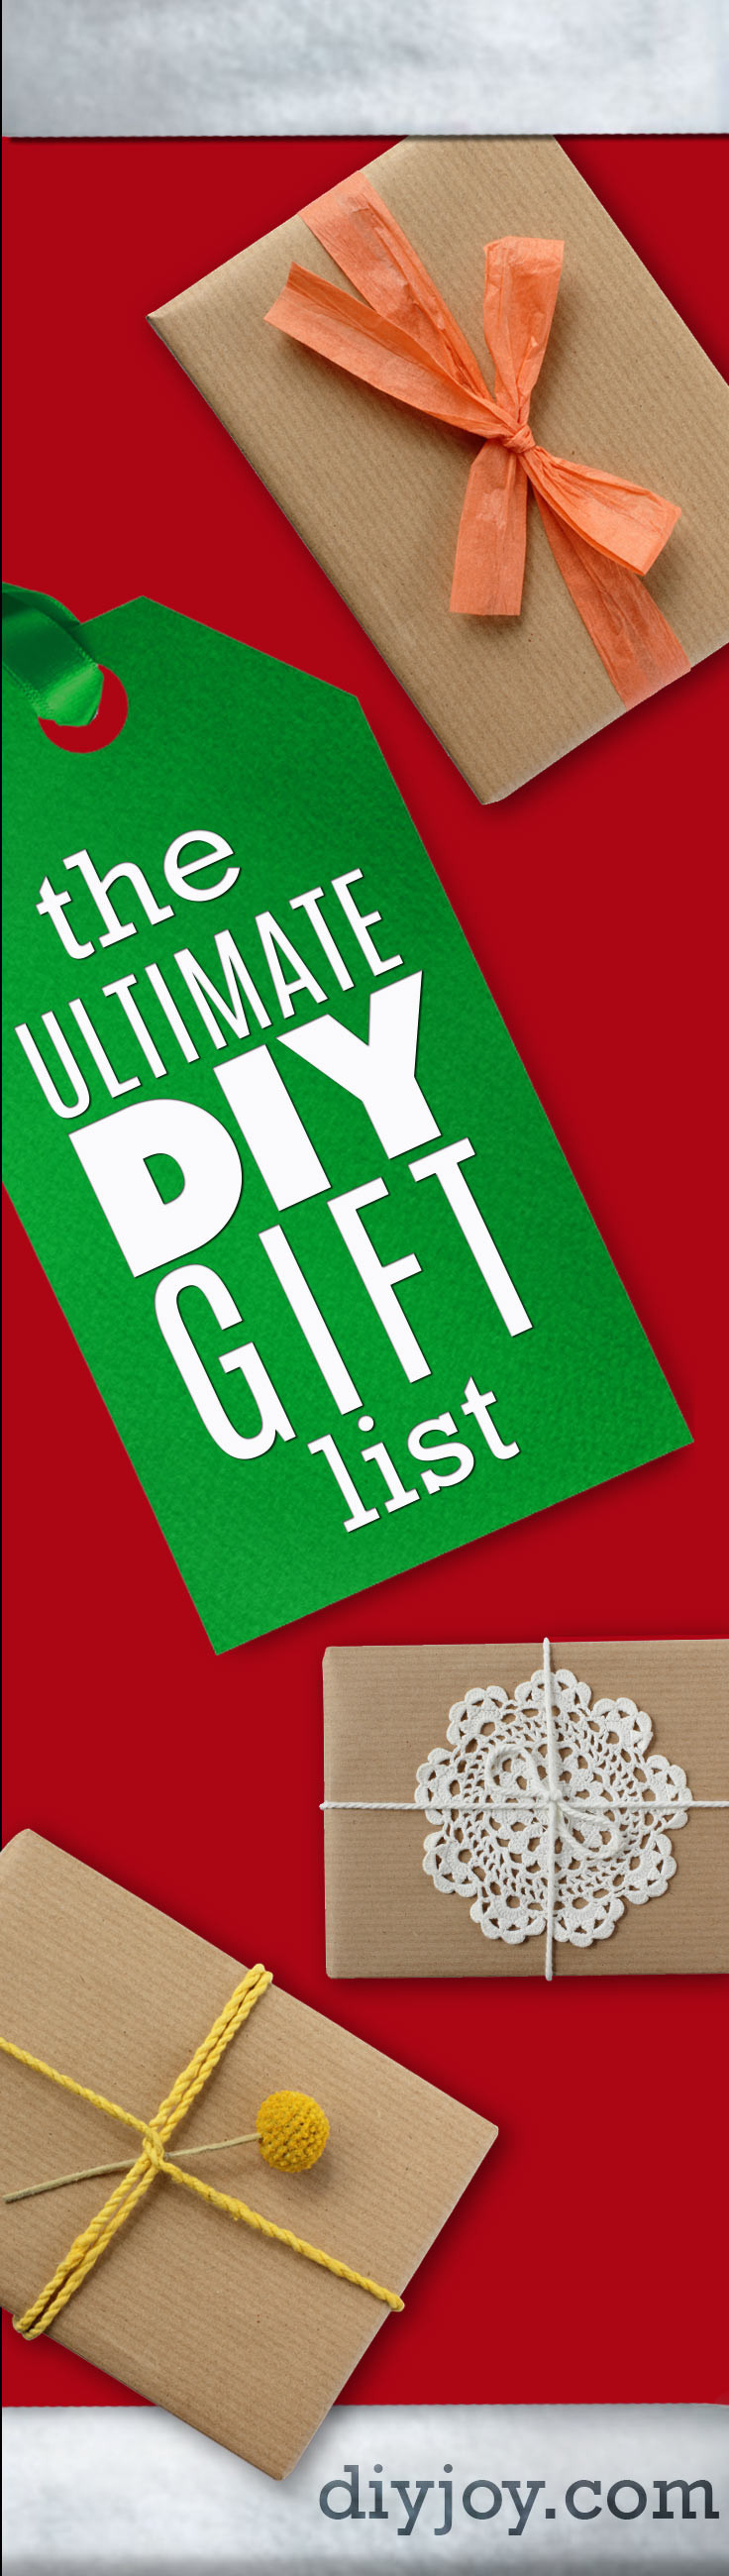 Best ideas about Christmas Gift Ideas For Boyfriends Parents . Save or Pin The Ultimate DIY Christmas Gifts list Now.